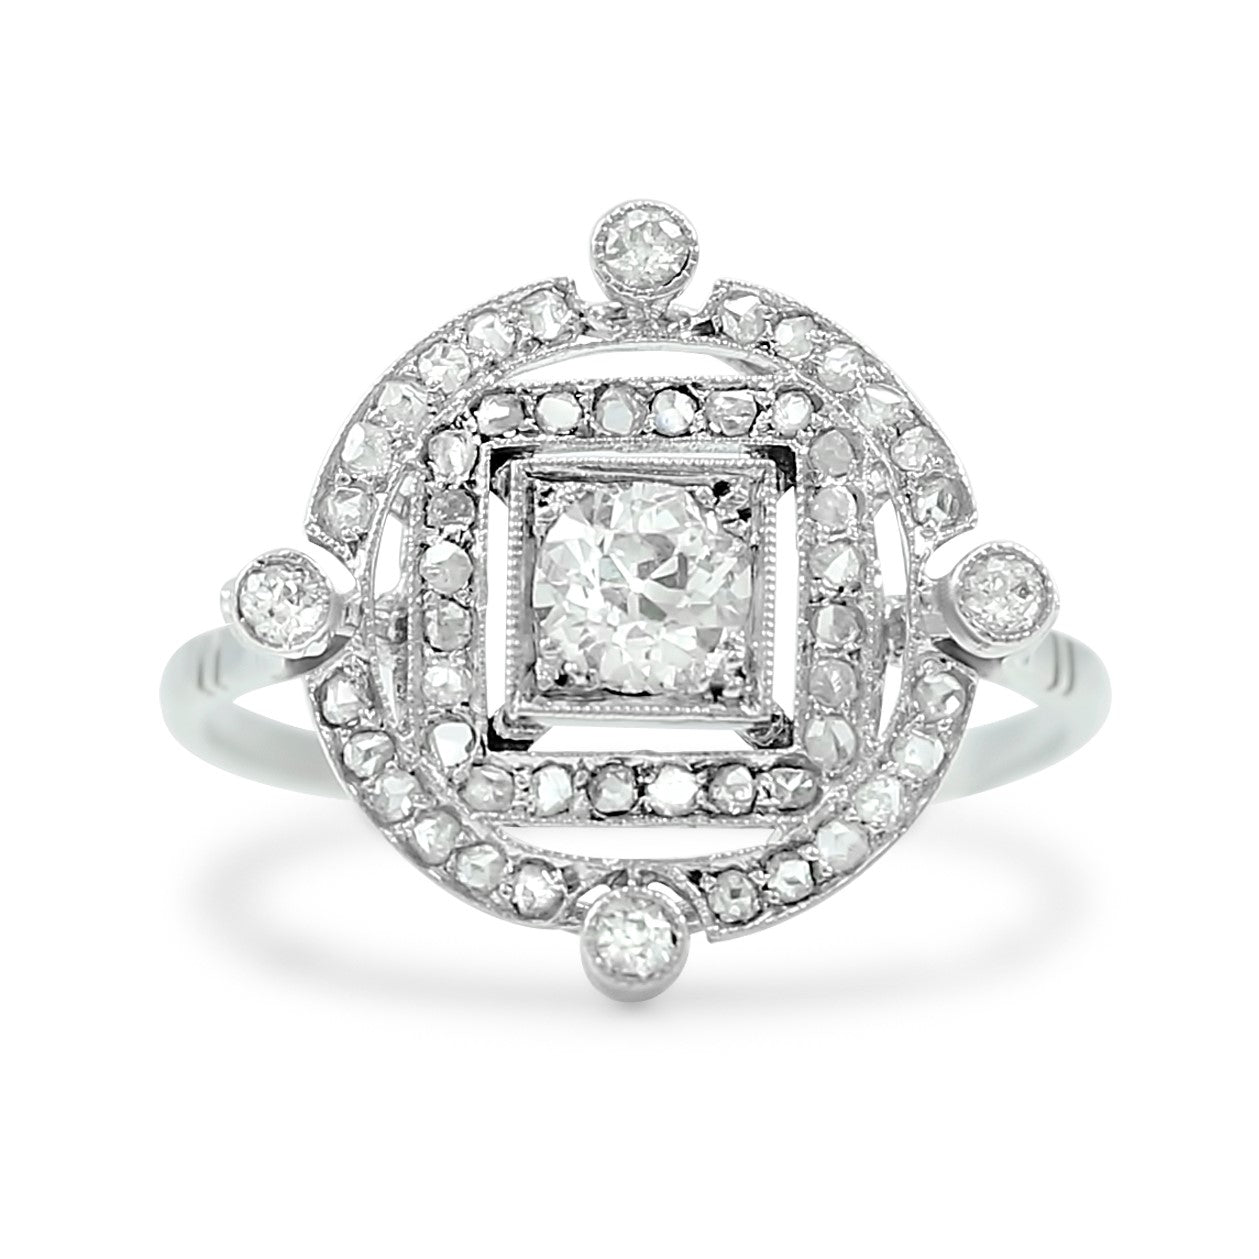 c. 1920 old european cut diamond center stone antique engagement ring set in platinum with a double diamond halo